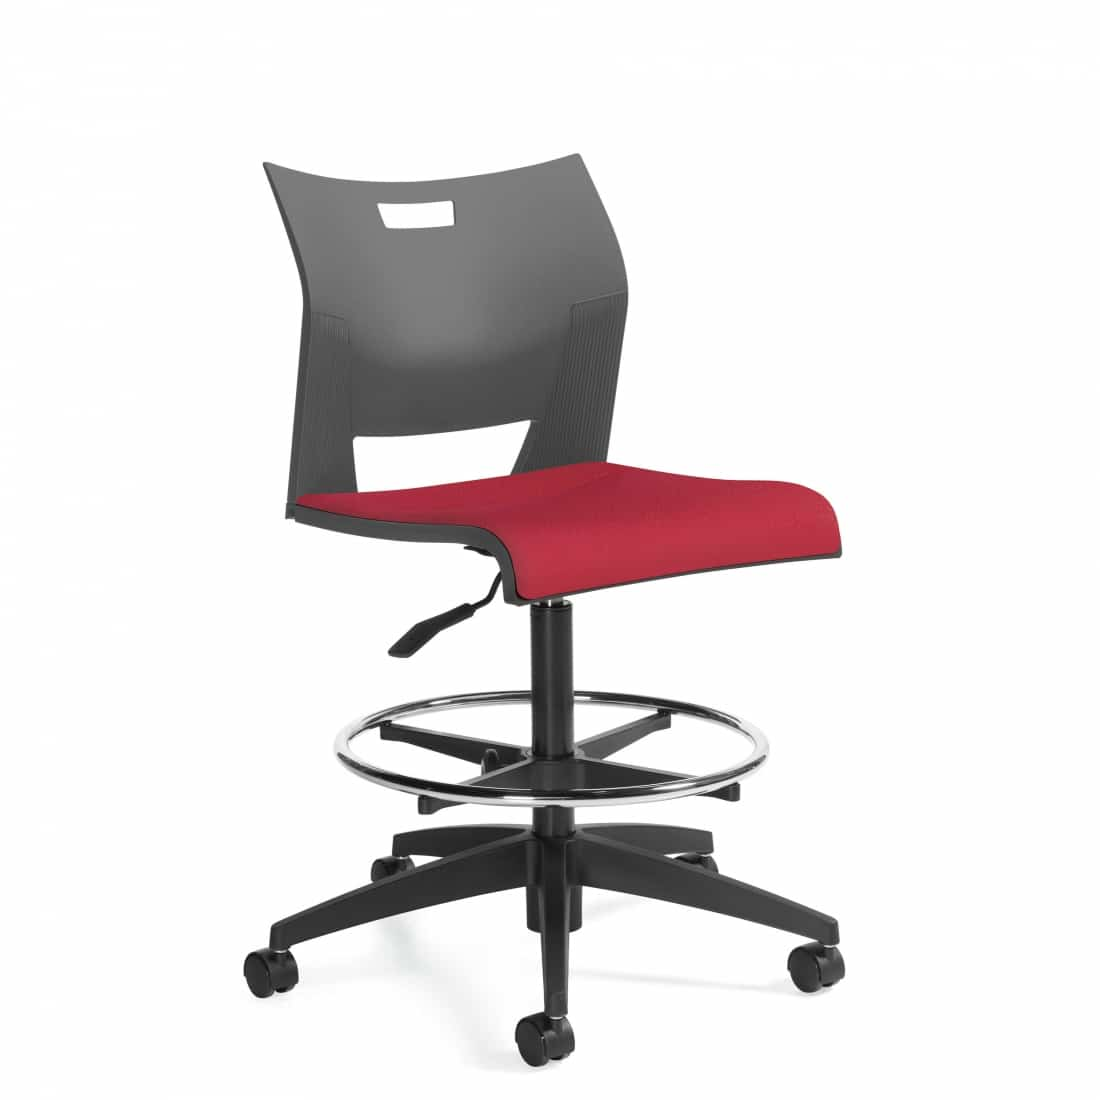 Armless Drafting Stool, Red Upholstered Seat, Grey back, footring and black casters (6733)